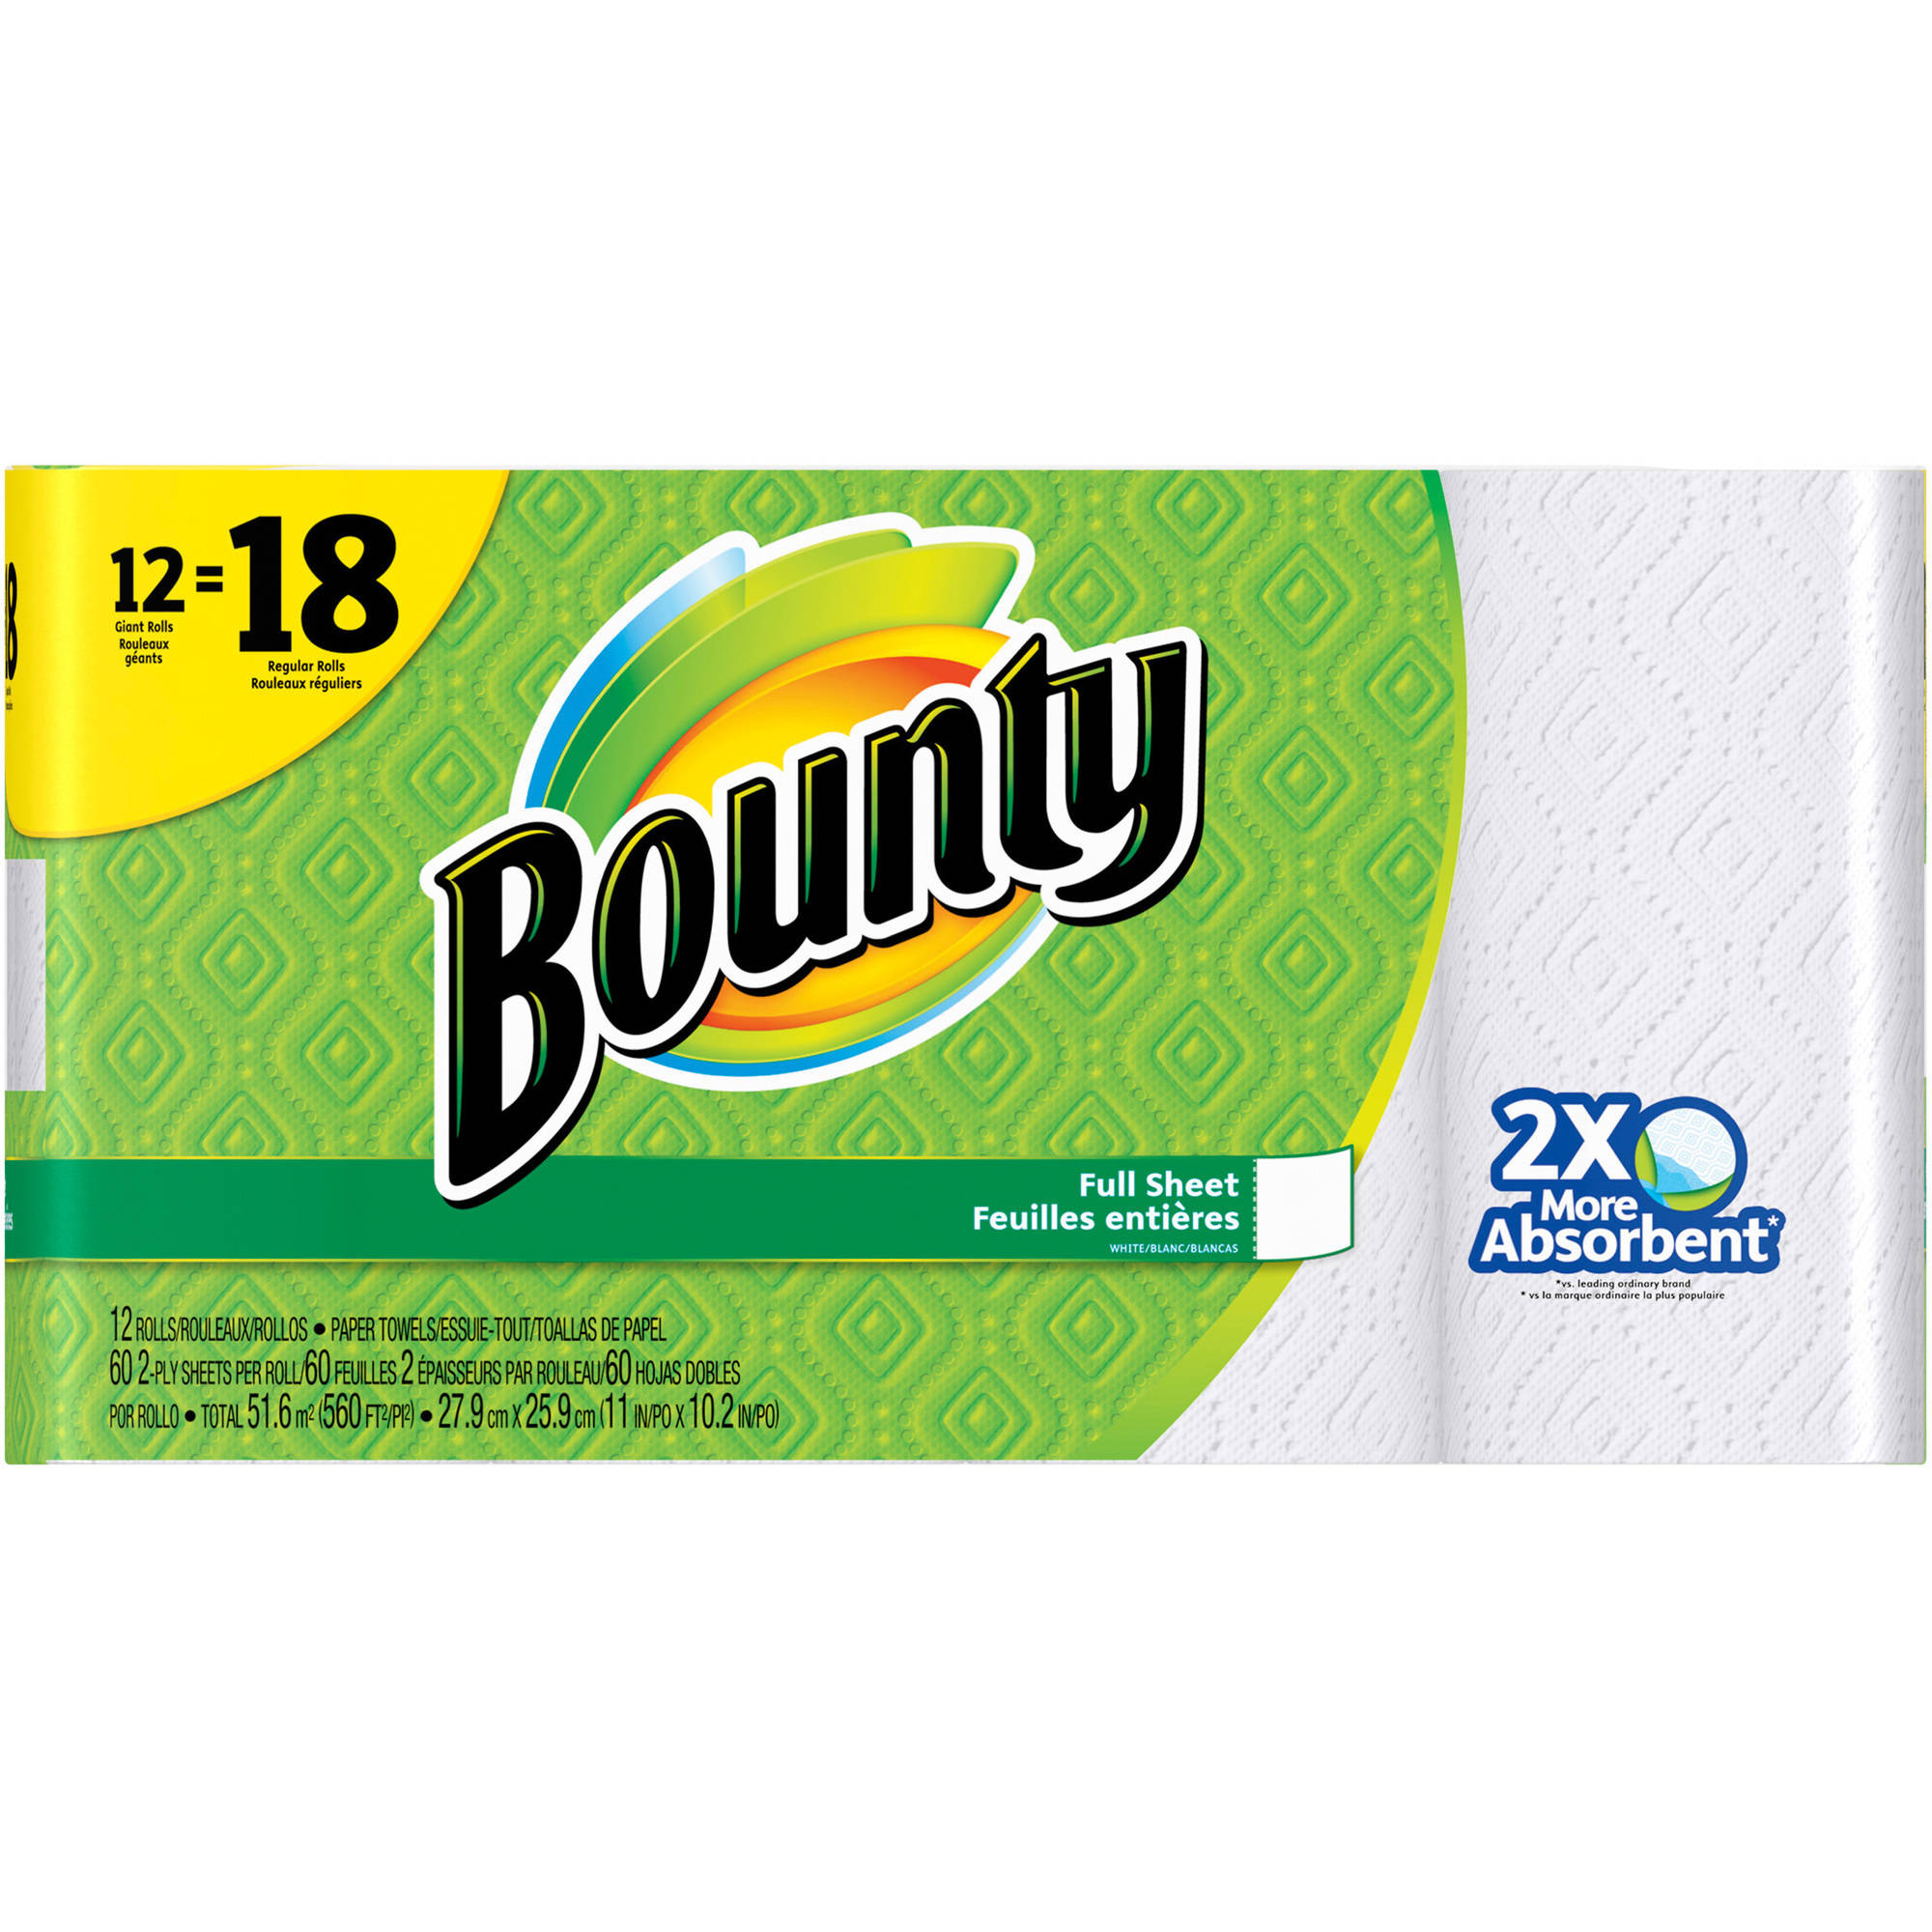 Bounty Giant Roll Paper Towels, 60 sheets, 12 rolls